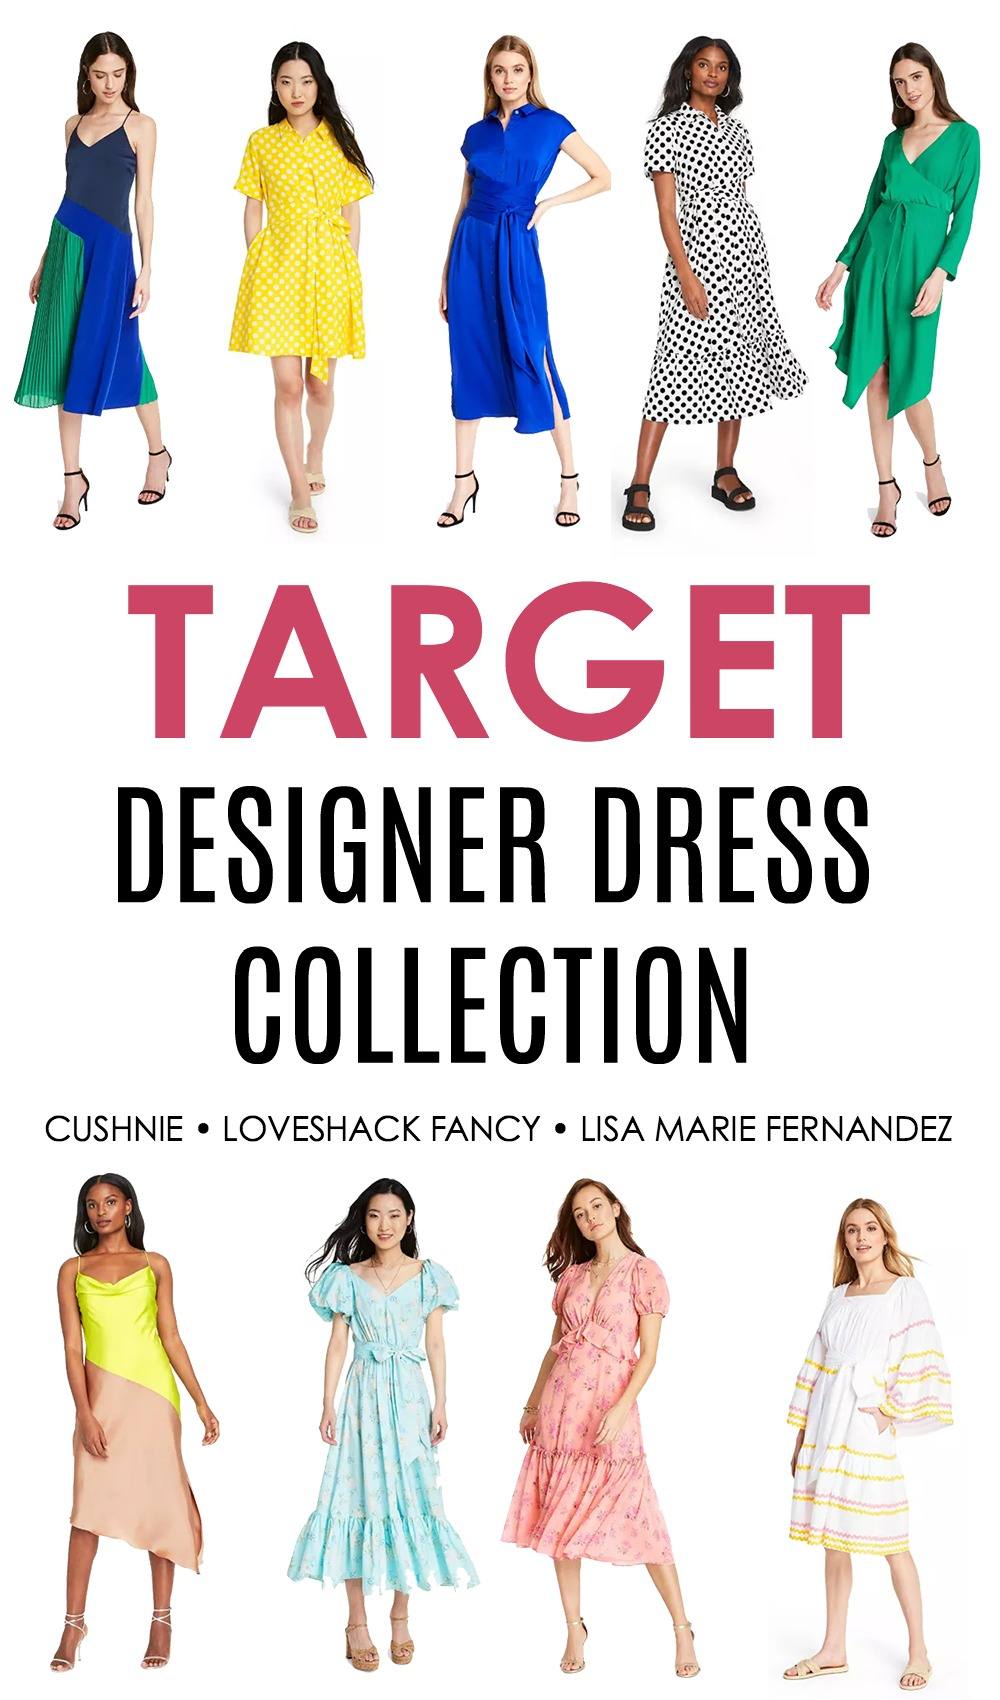 Target Designer Dress Collection for Summer 2020 I Dreaminlace.com